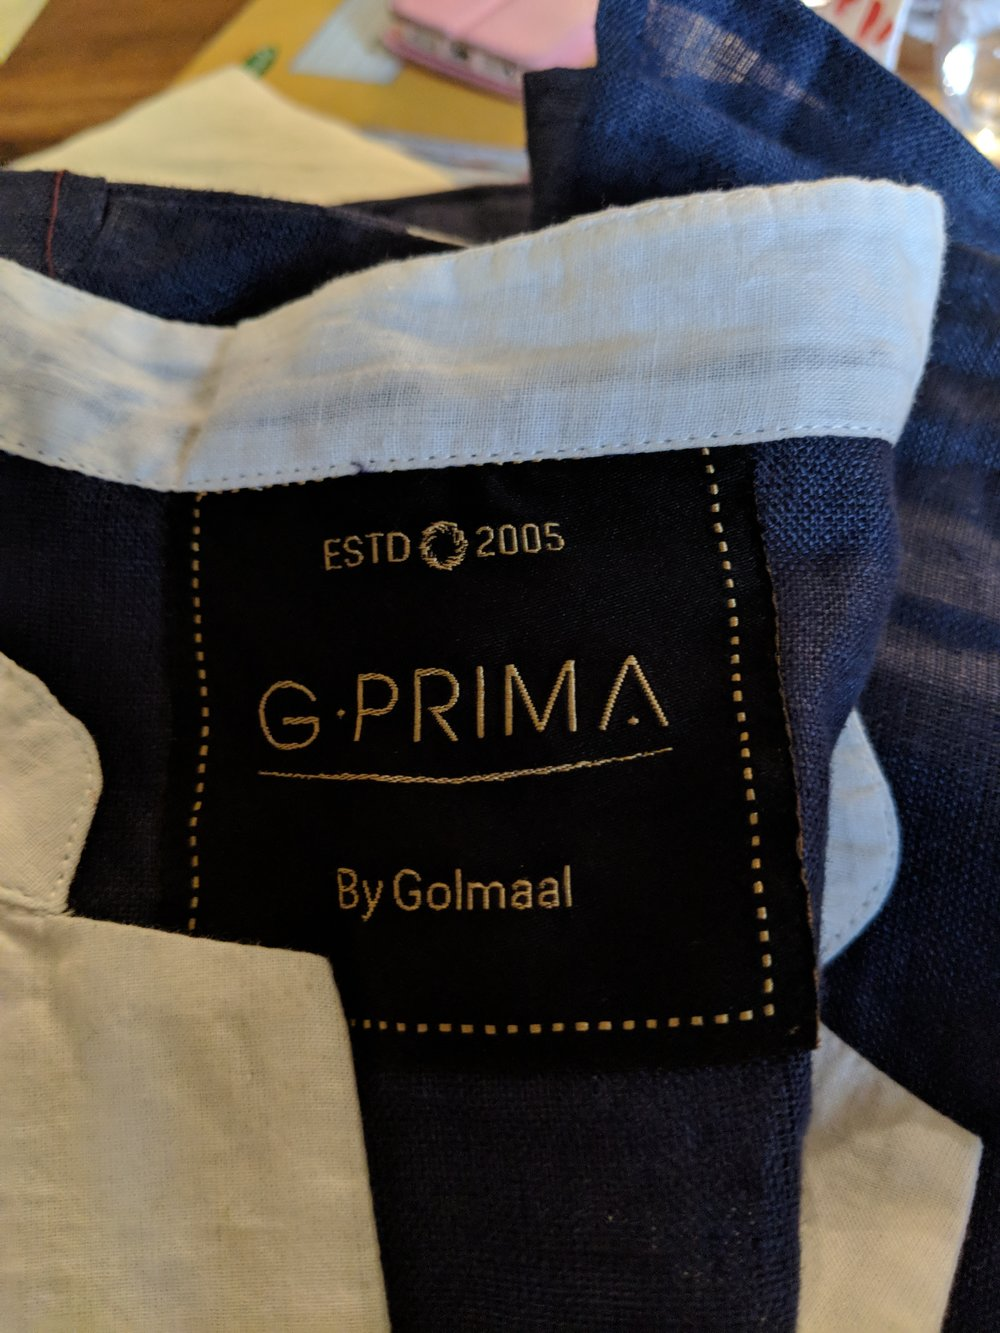 G. PRIMA Labels  - Our Premium label is the G.Prima label and its really a super-stylish product. Our Premium line is for a discerning customer, looking for CUSTOM design and personalised fitting sessions. Call today for our PREMIUM service